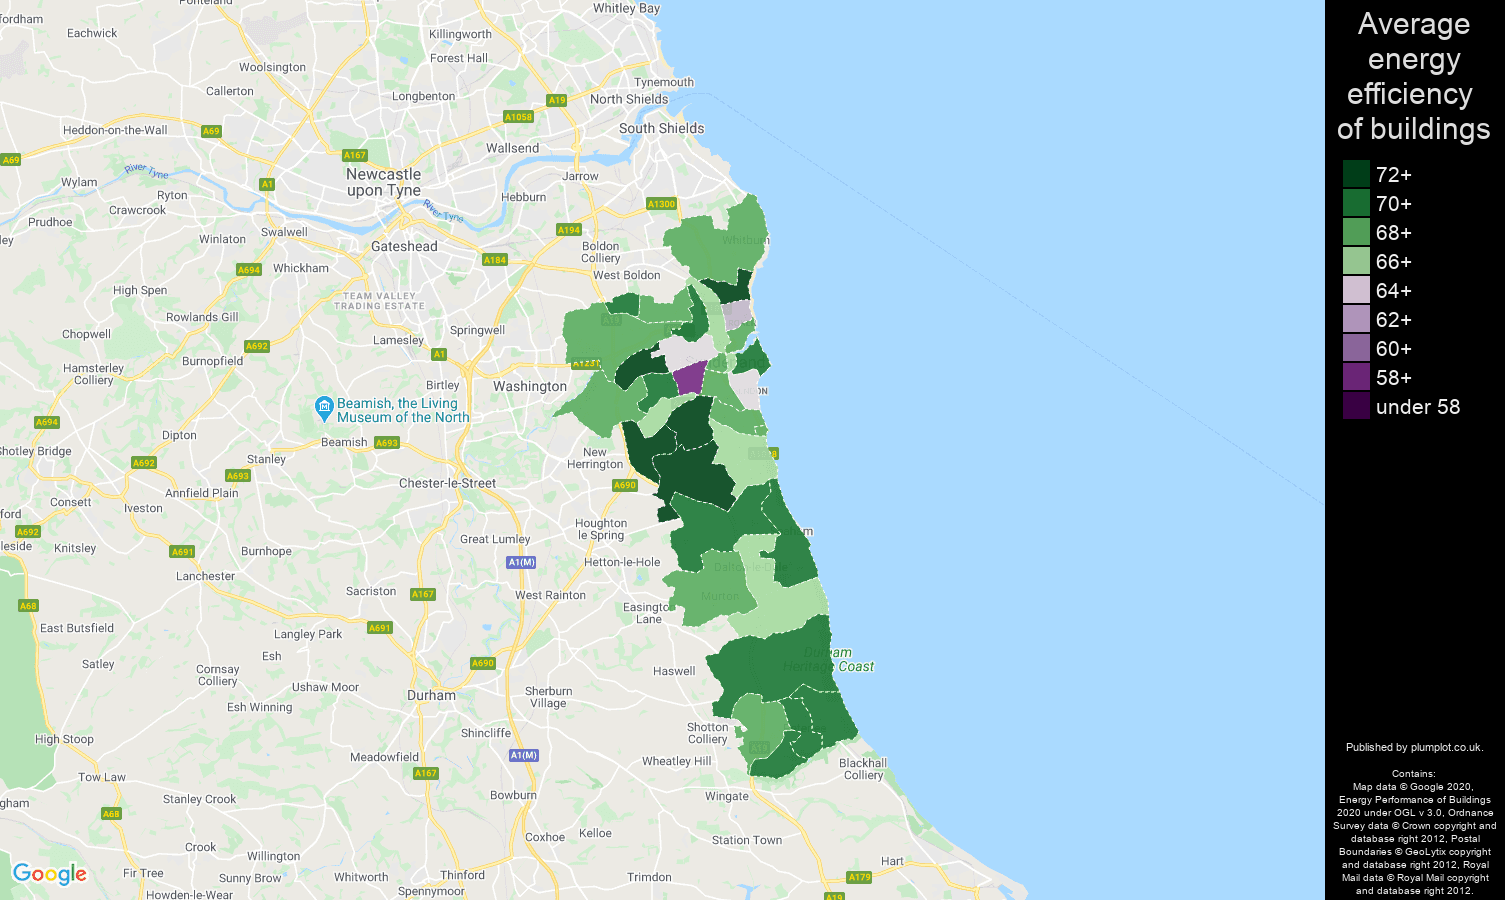 Sunderland map of energy efficiency of flats